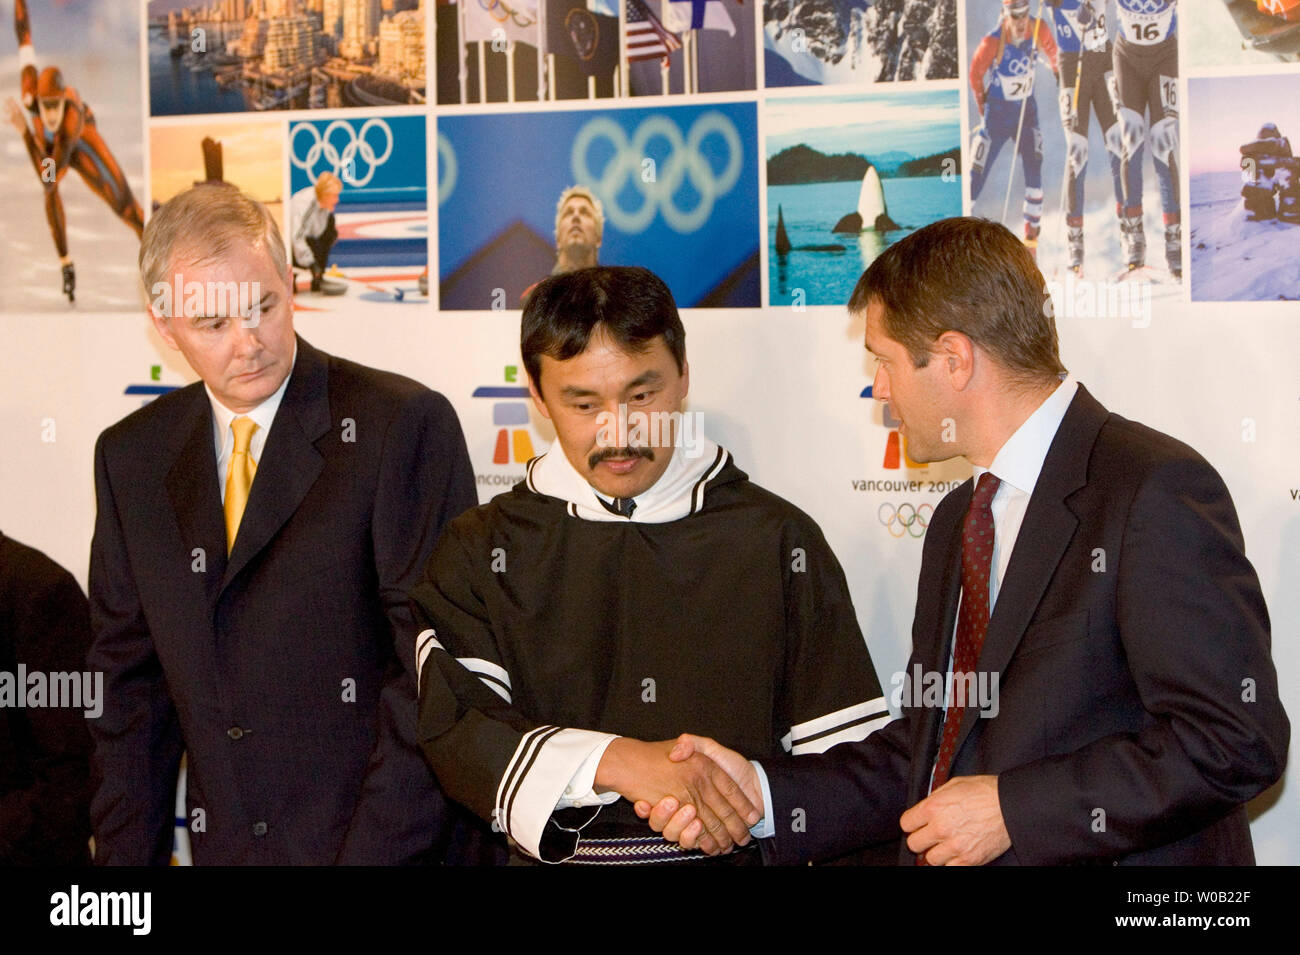 VANOC CEO John Furlong (l.) looks on as Director IOC Television and Marketing Services, Timo Lumme (r.) shakes hands with Paul Okalik, Premier of the territory of Nunavut at a press conference after the unveiling of Vancouver 2010's new Olympic emblem 'Ilanaaq' an inukshuk during a ceremony held at Vancouver's GM Place, April 23, 2005.   (UPI Photo / Heinz Ruckemann) - Stock Image